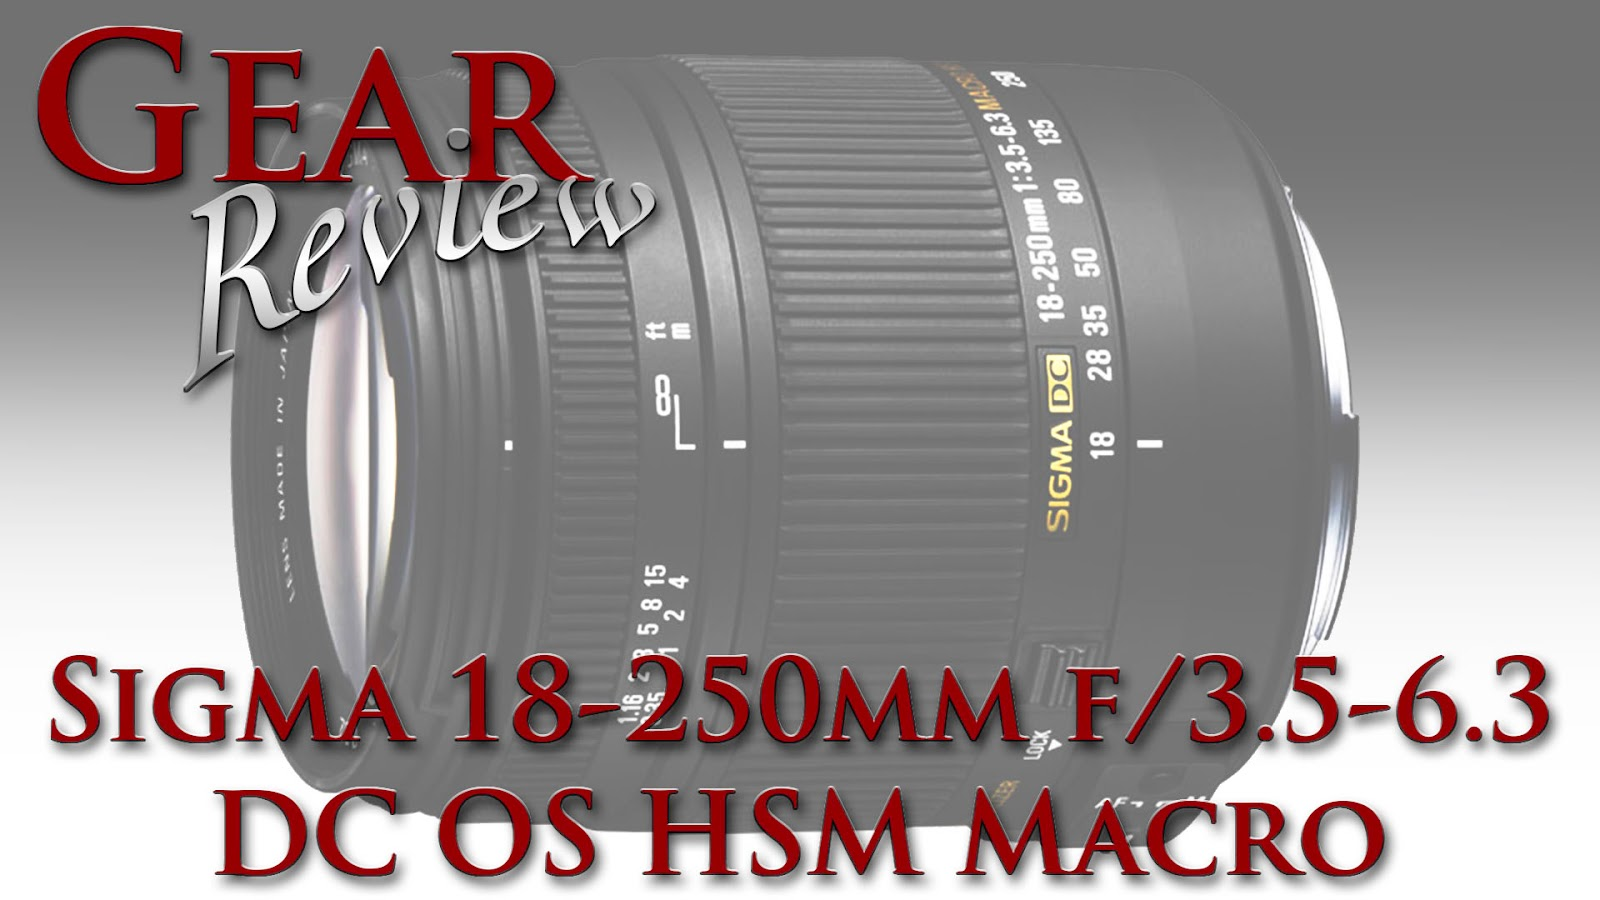 Sigma 18-250mm f/3.5-6.3 DC OS HSM Macro Lens | Gear Review